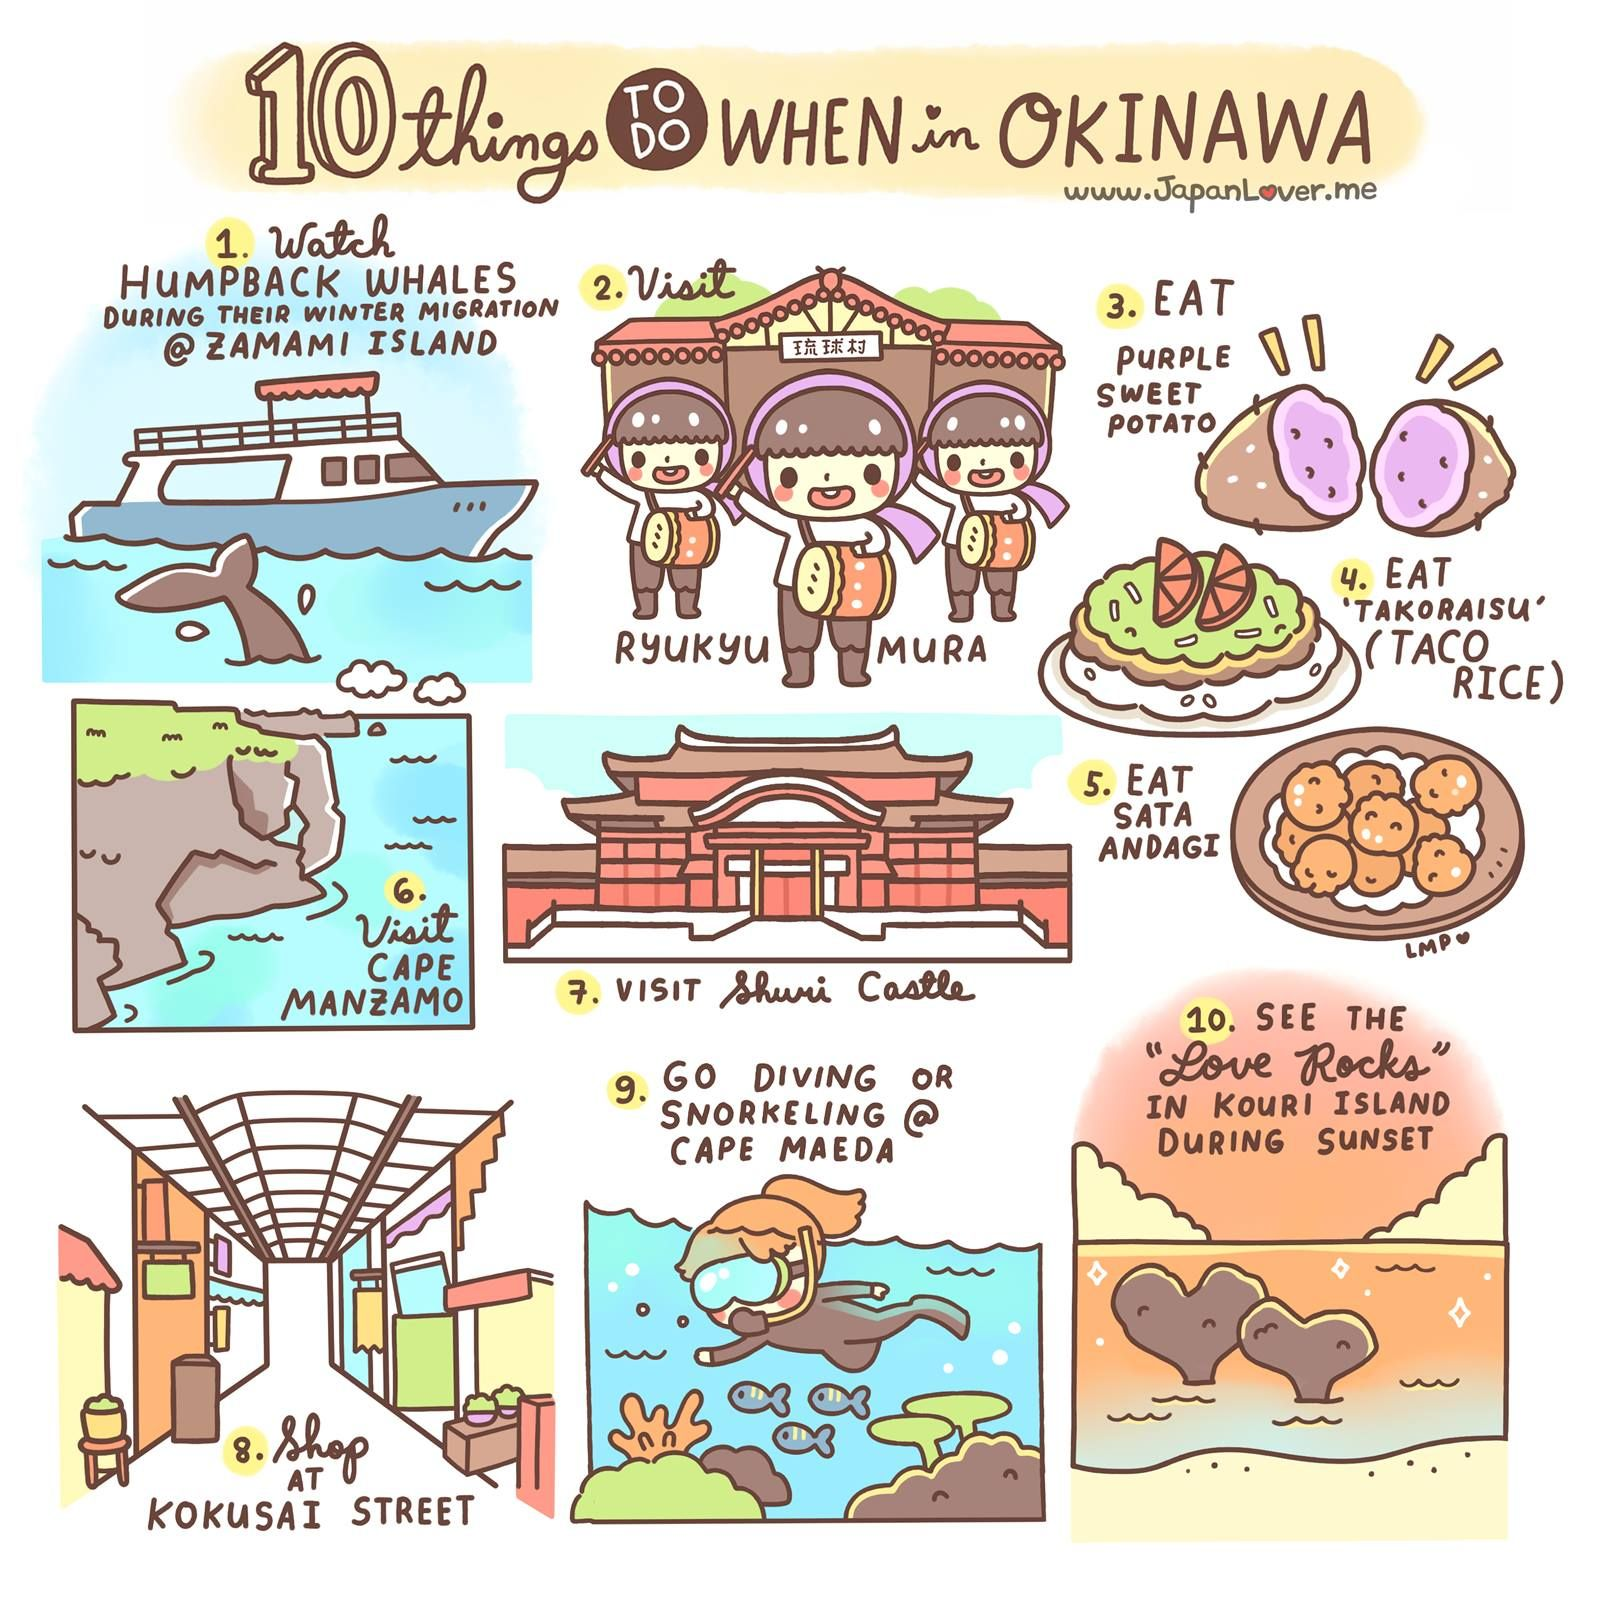 10 Things To Do When In Okinawa Http://japanlover.me/cool